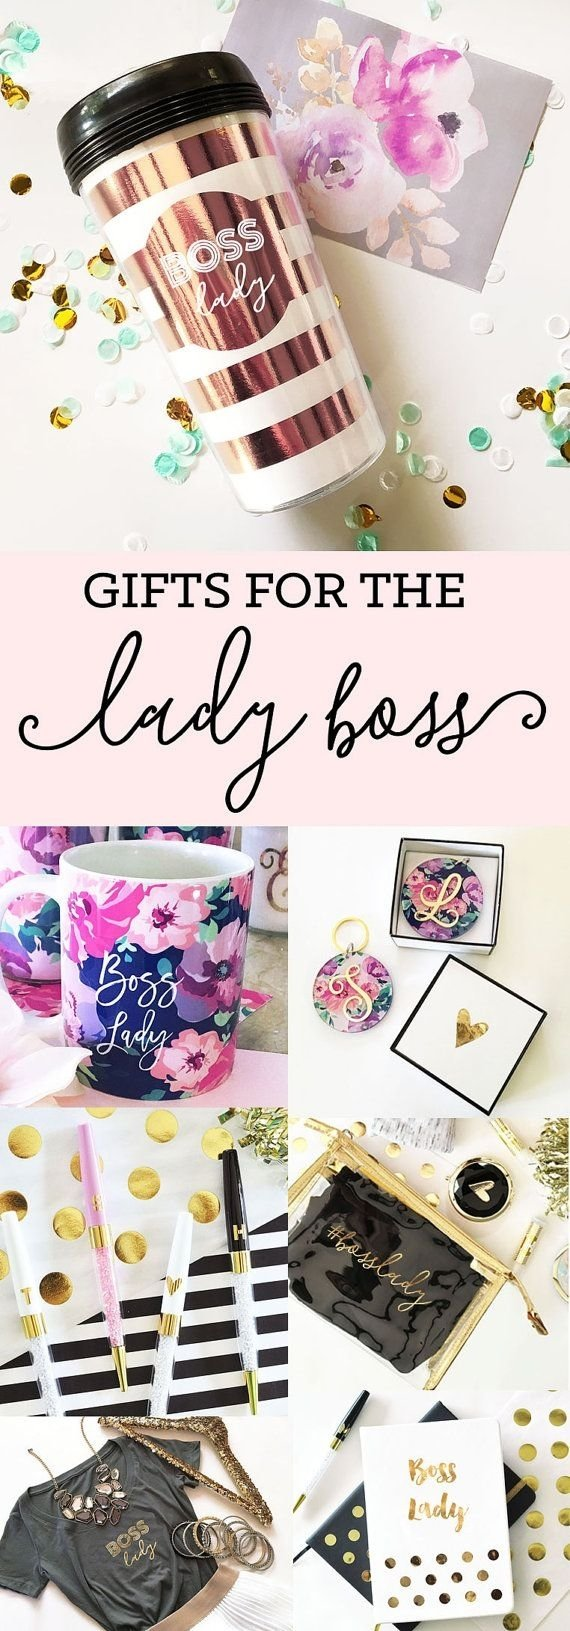 Best Christmas Gifts For My Boss   Giftsite.co